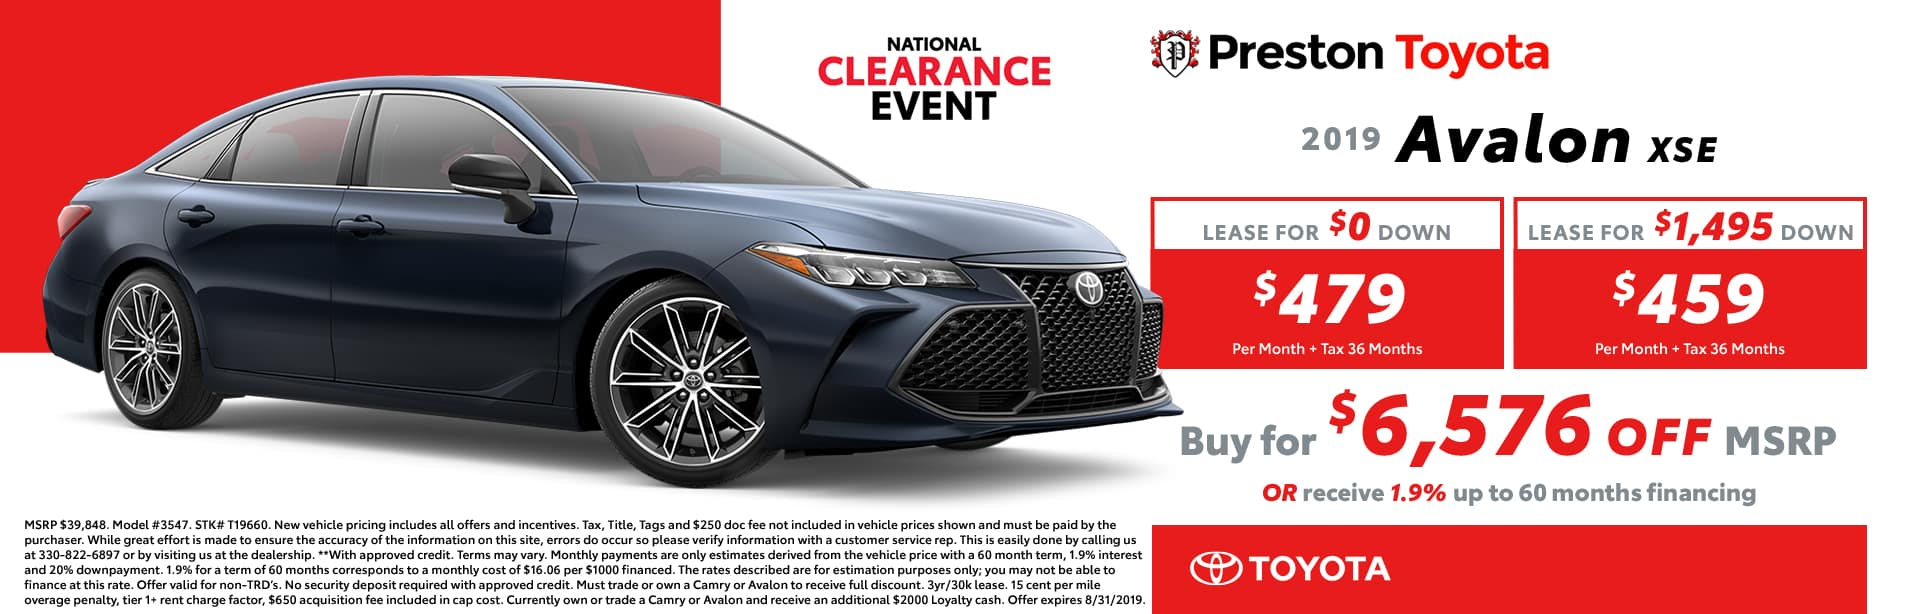 August special on the 2019 Avalon